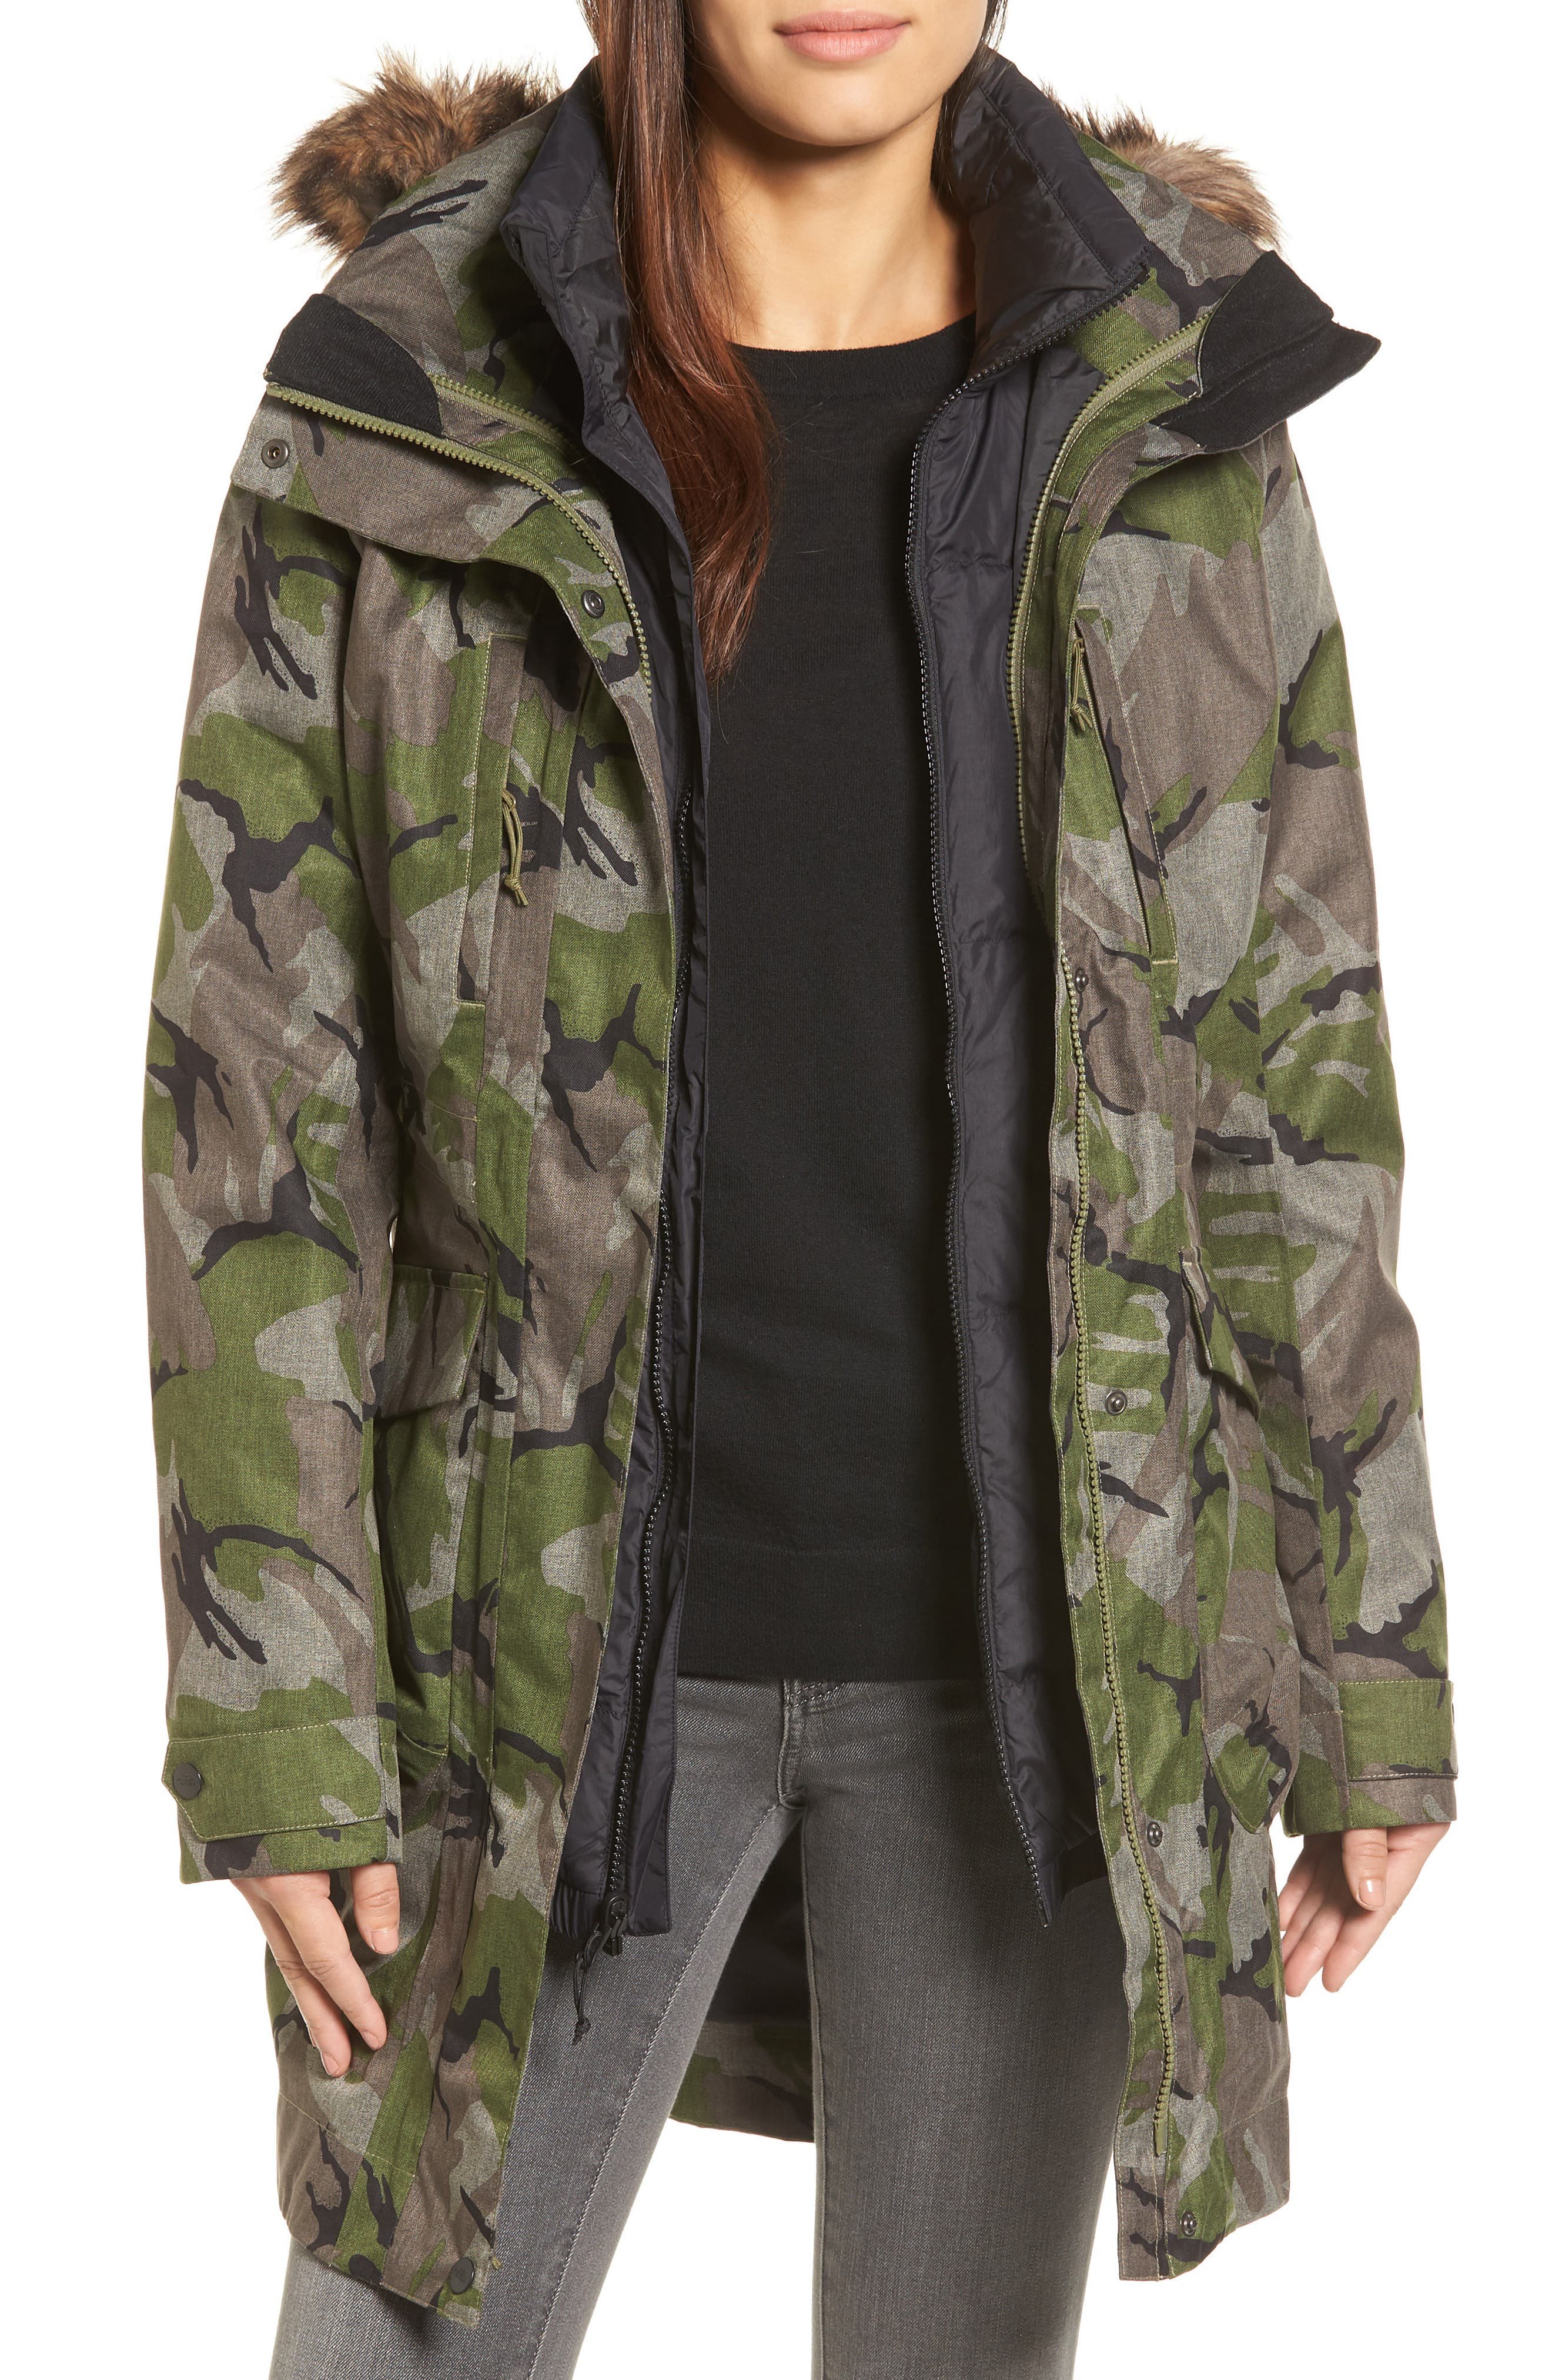 Alternate Image 1 Selected - The North Face Outer Boroughs 3-in-1 TriClimate® Waterproof Jacket with Faux Fur Trim